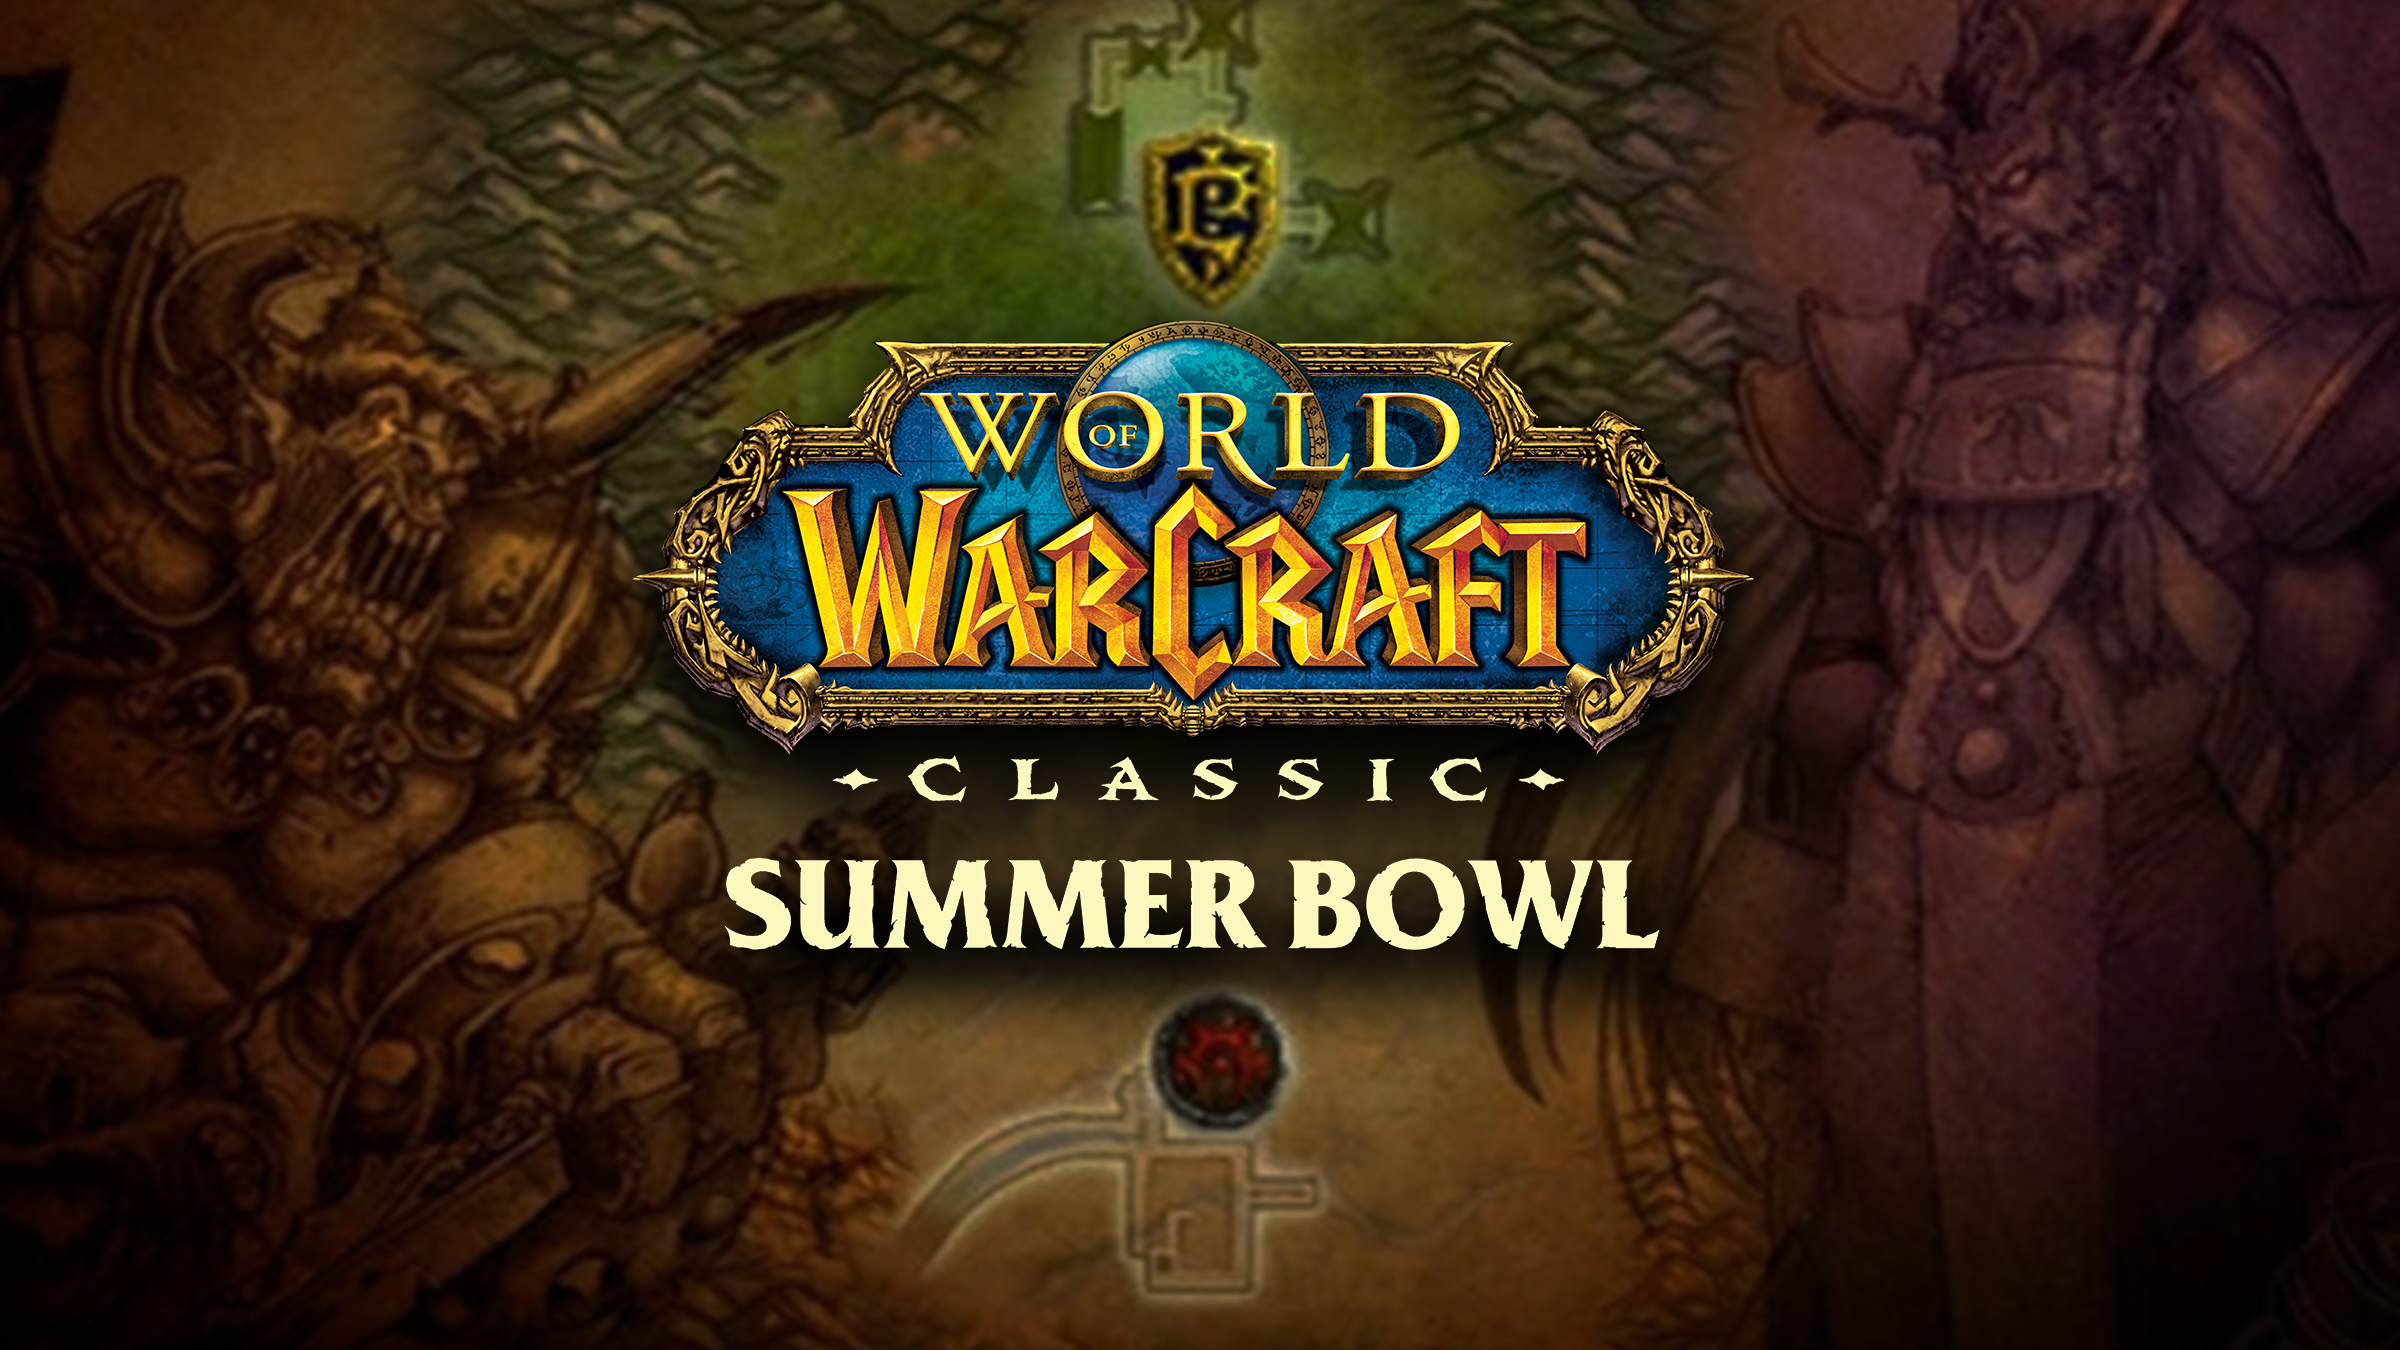 Introducing the World of Warcraft Classic Summer Bowl!